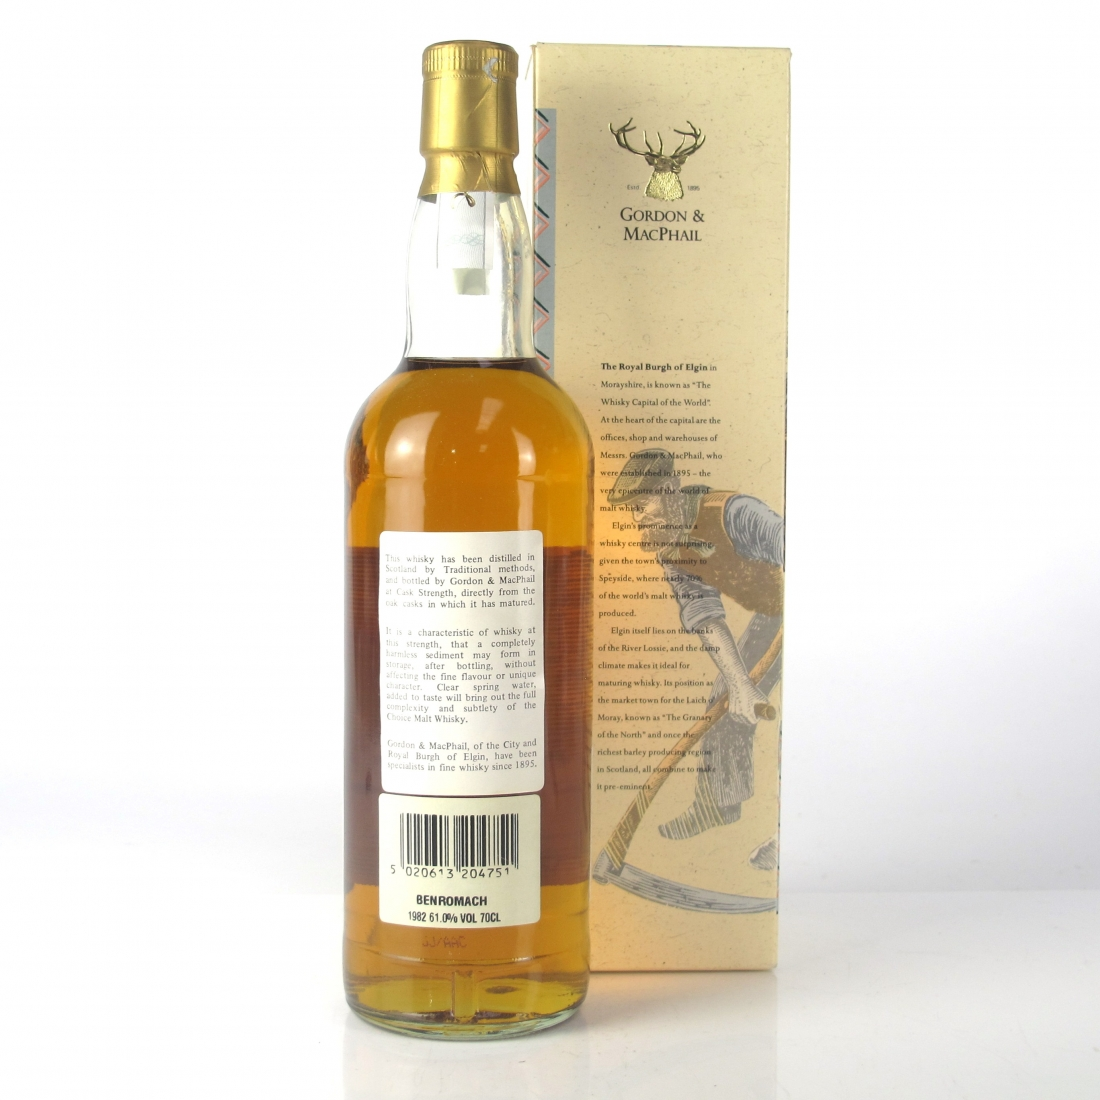 Benromach 1982 Gordon and MacPhail Cask Strength